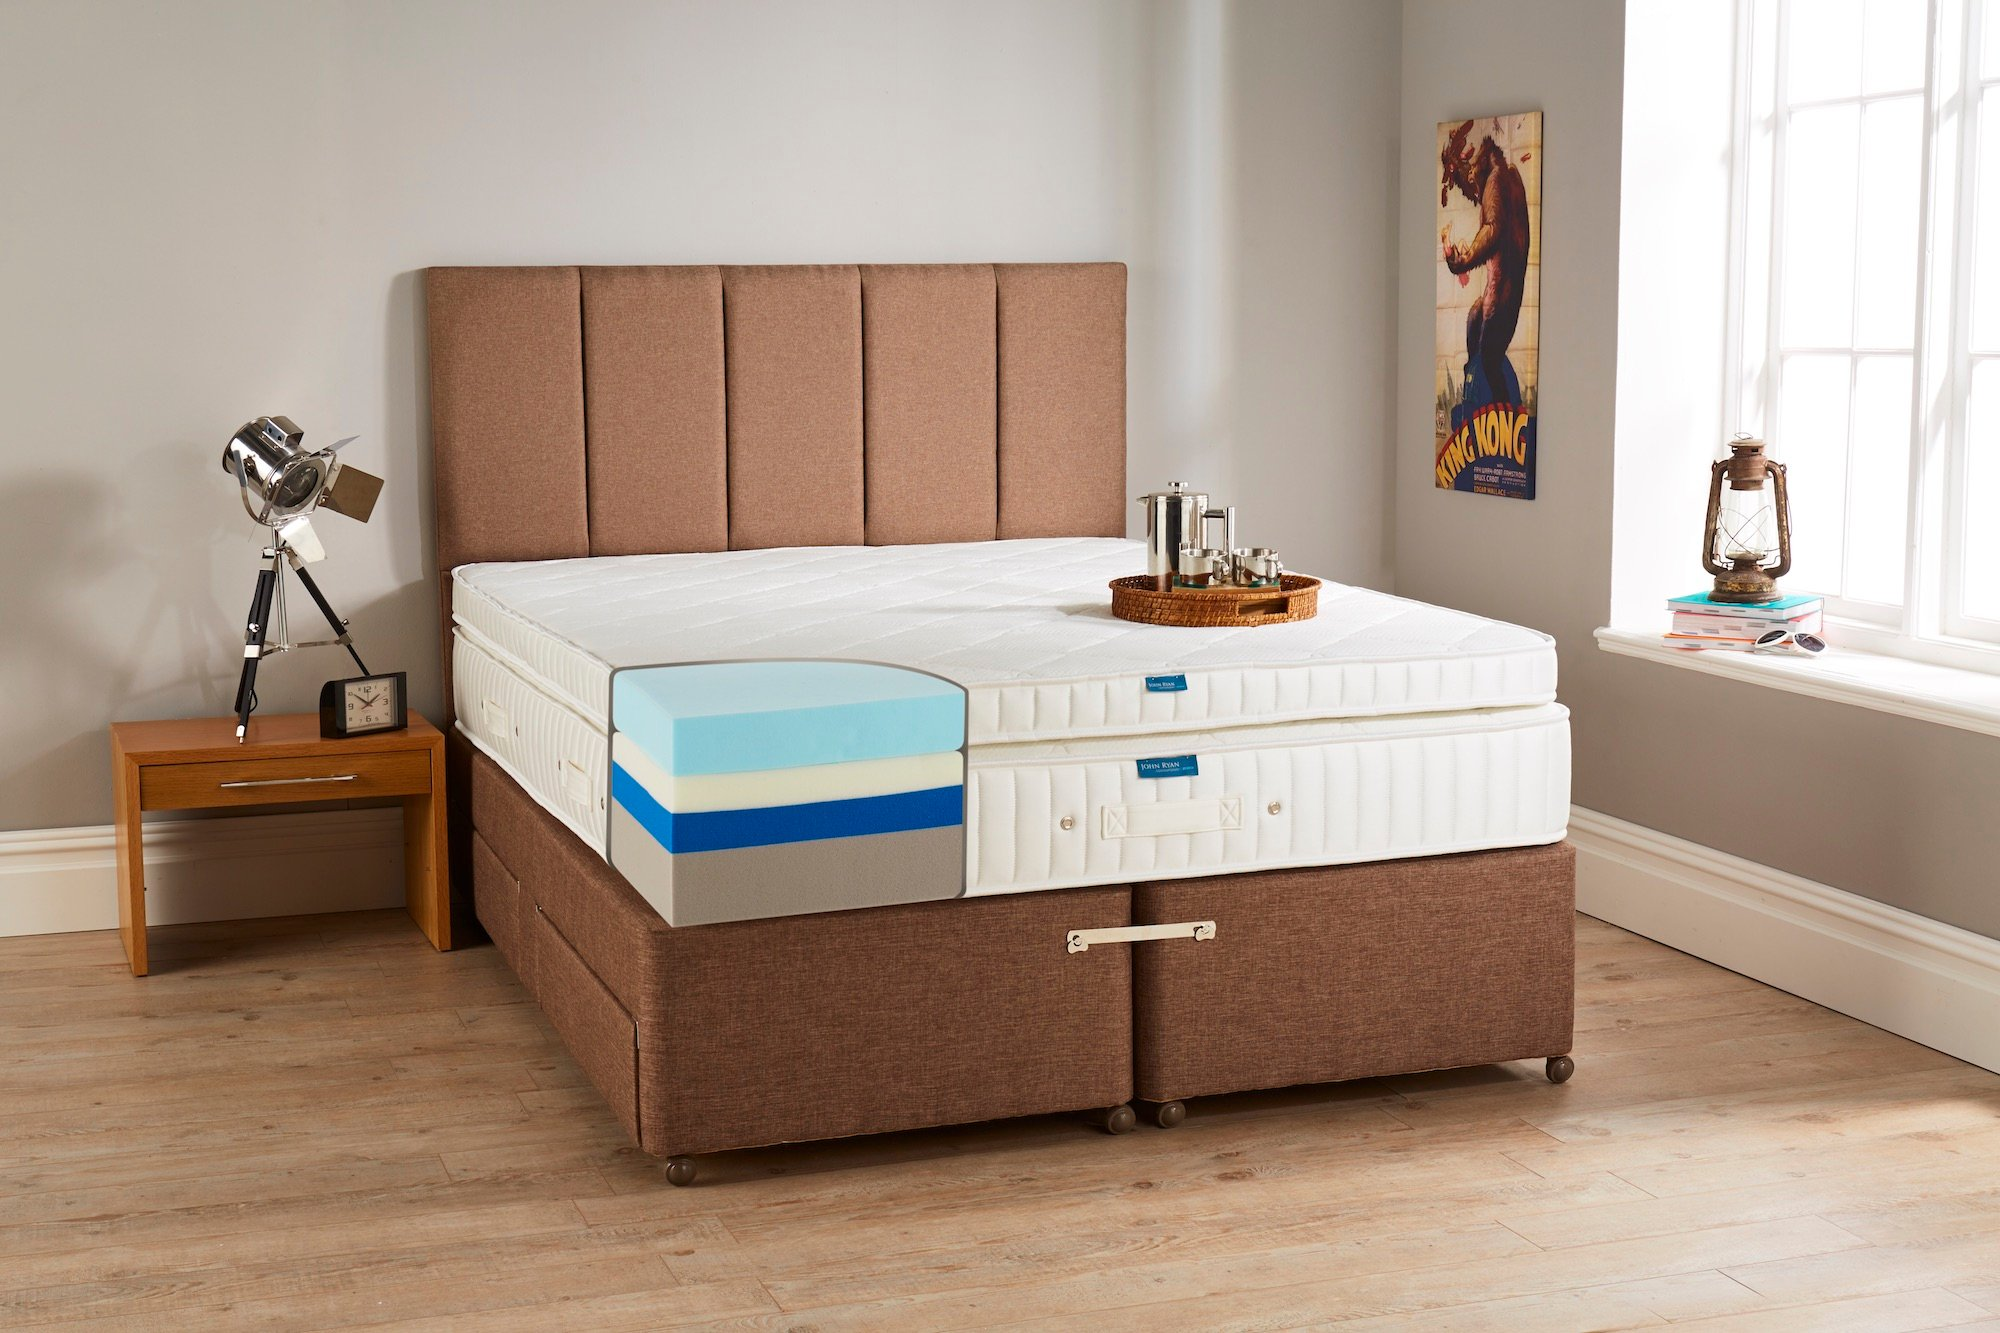 Hybrid 5 Luxury Foam Mattress John Ryan By Design Mattress Amp Bed Specialists